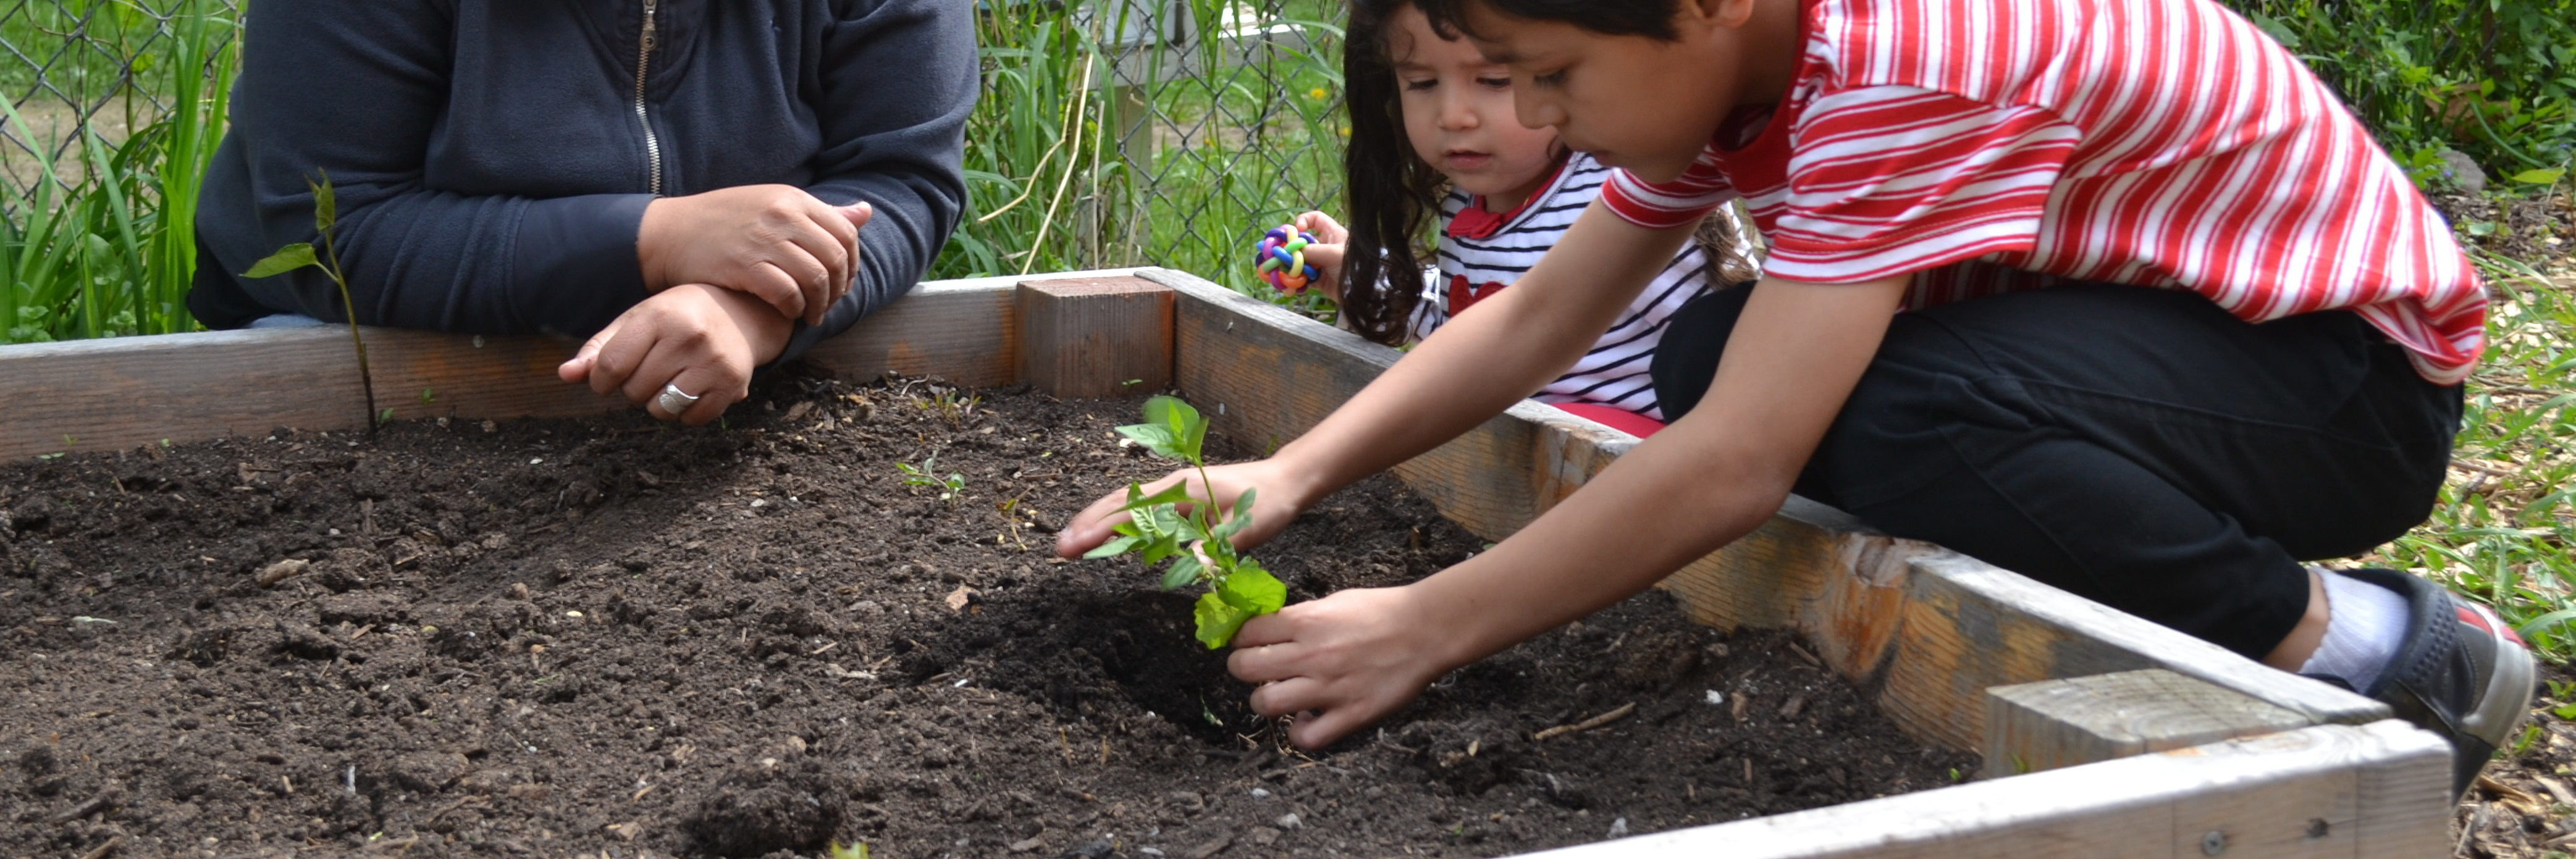 Kids planting veggies